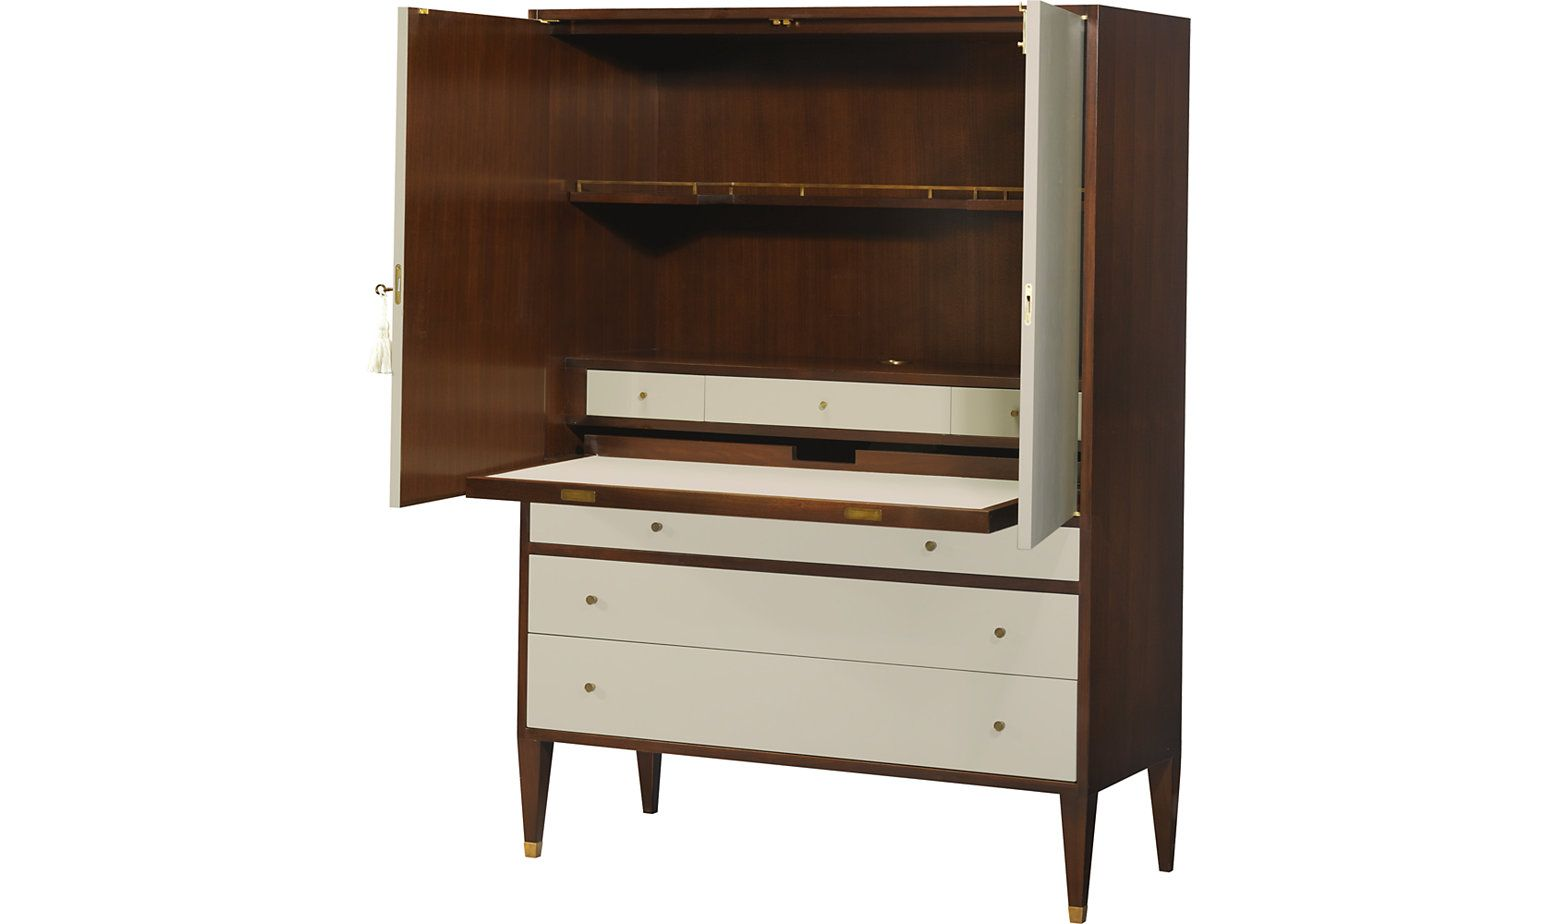 social study by barbara barry 3687 baker furniture armoire inspiration